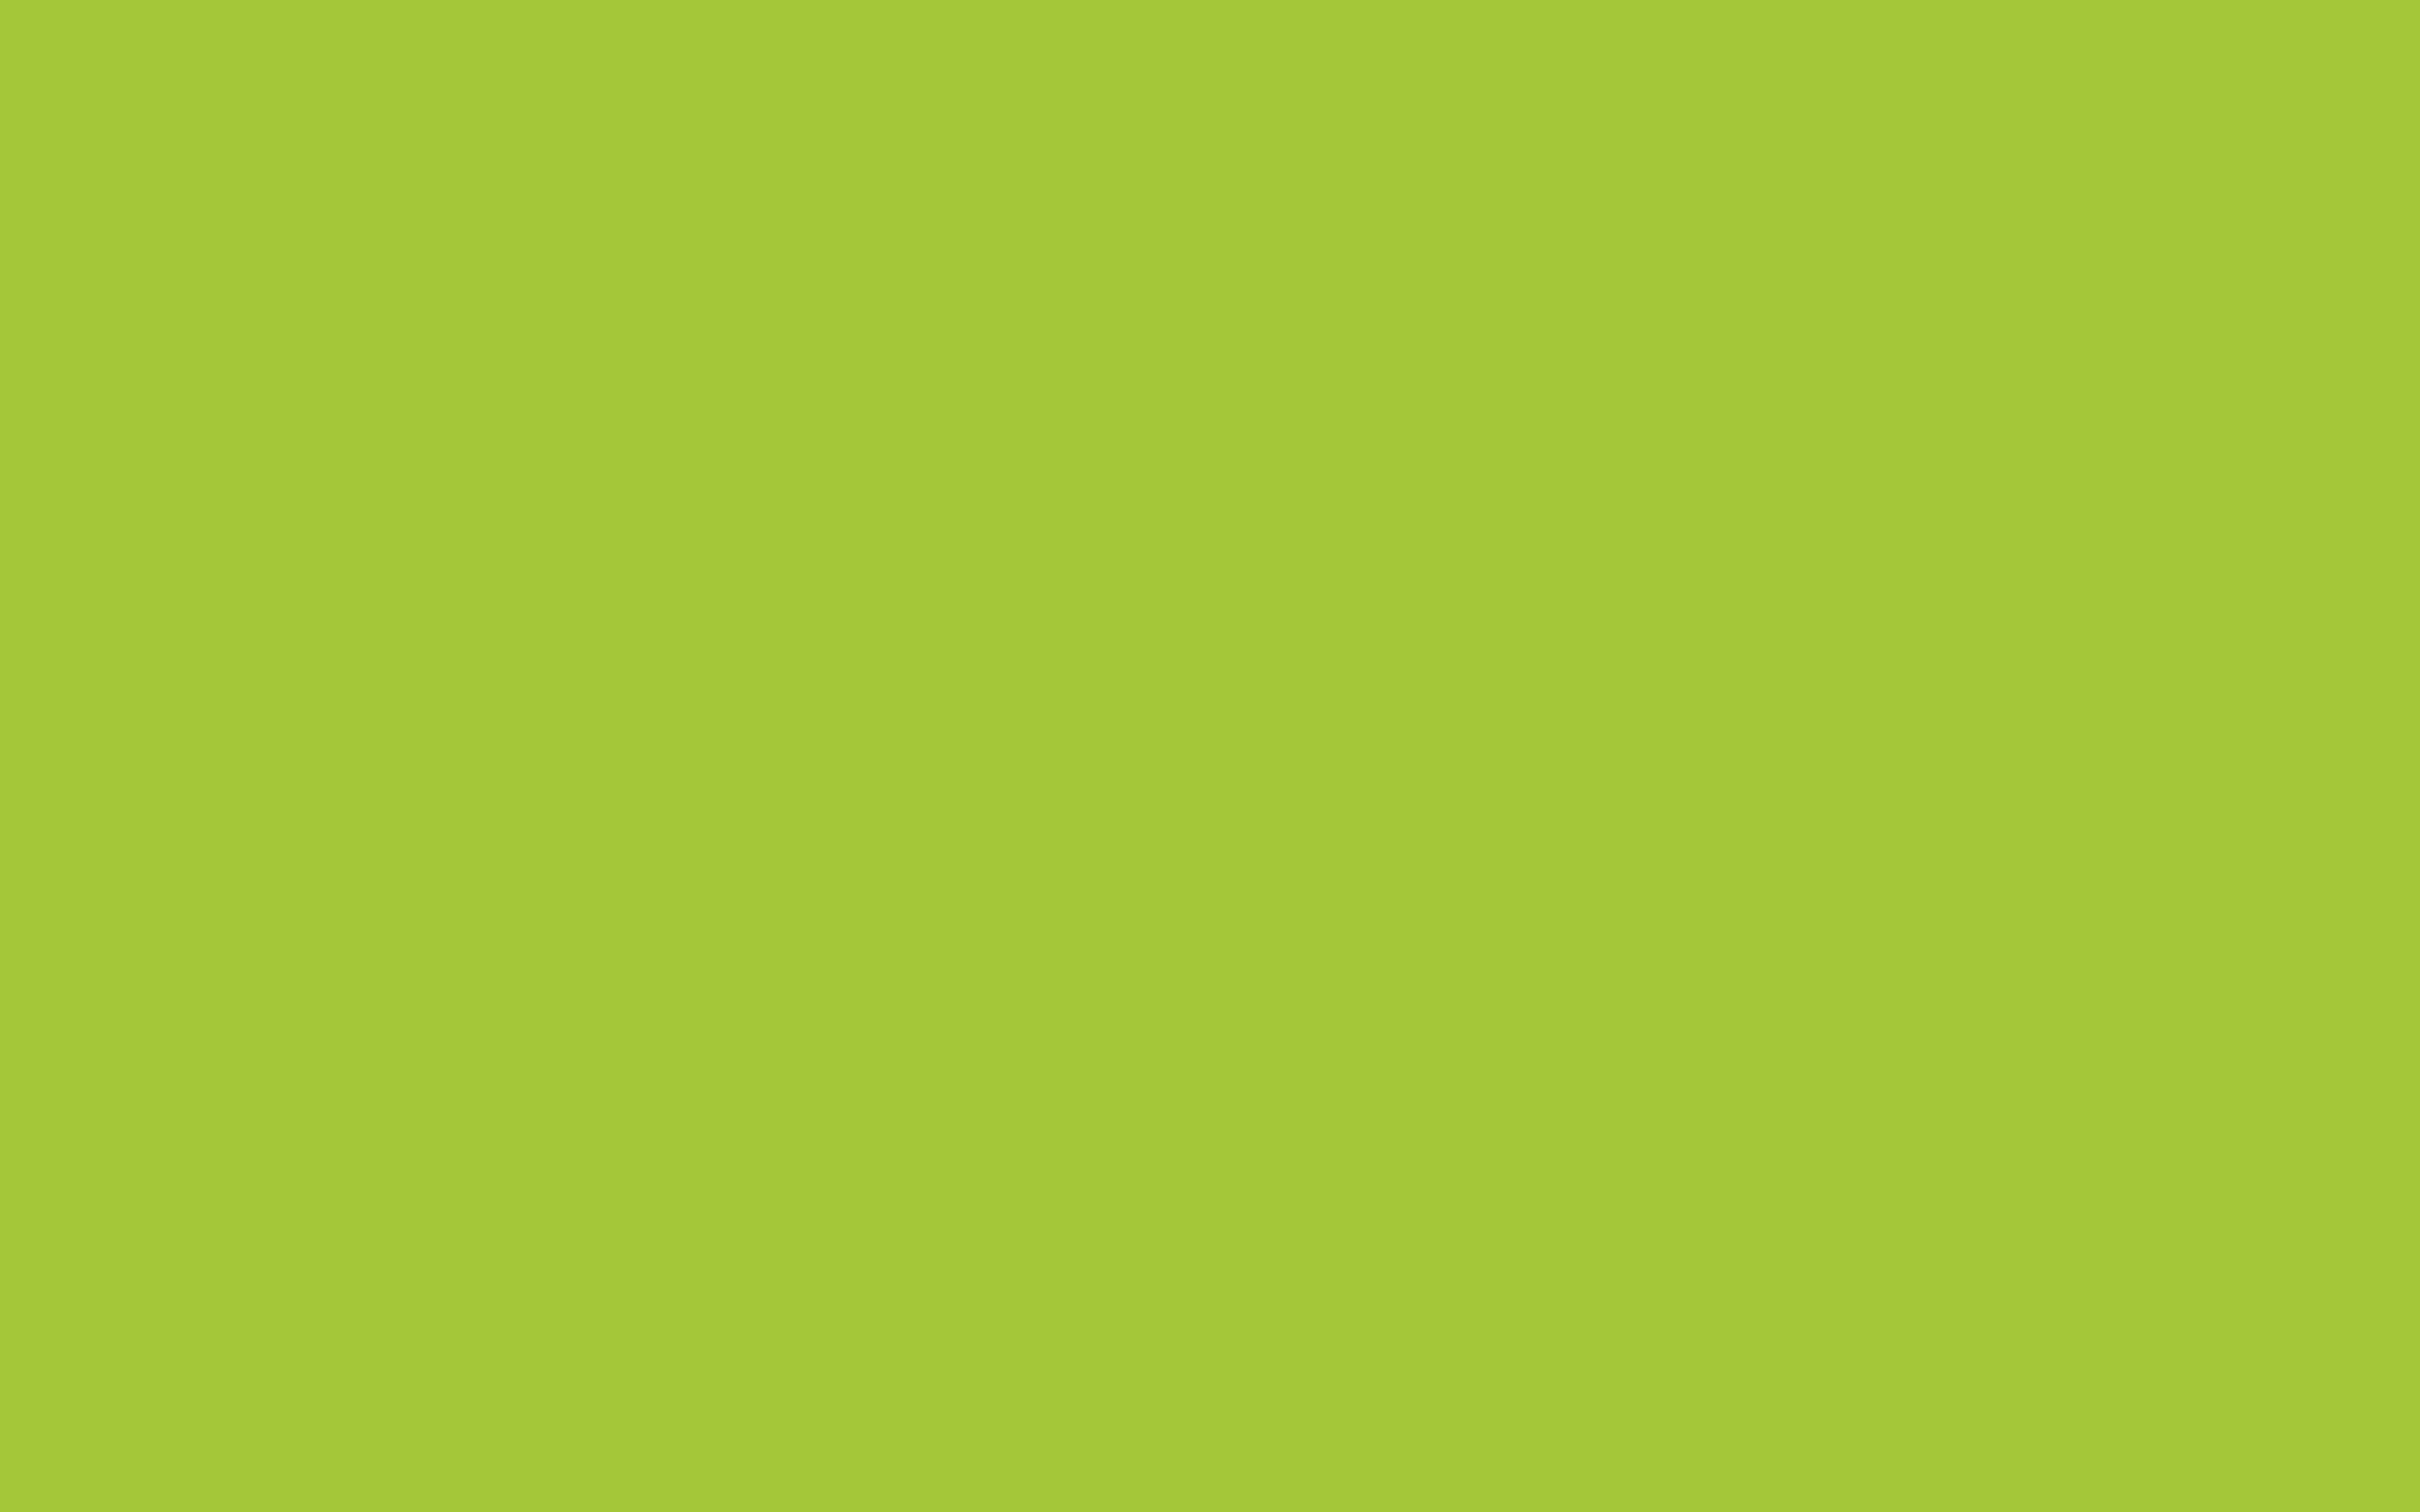 2880x1800 Android Green Solid Color Background